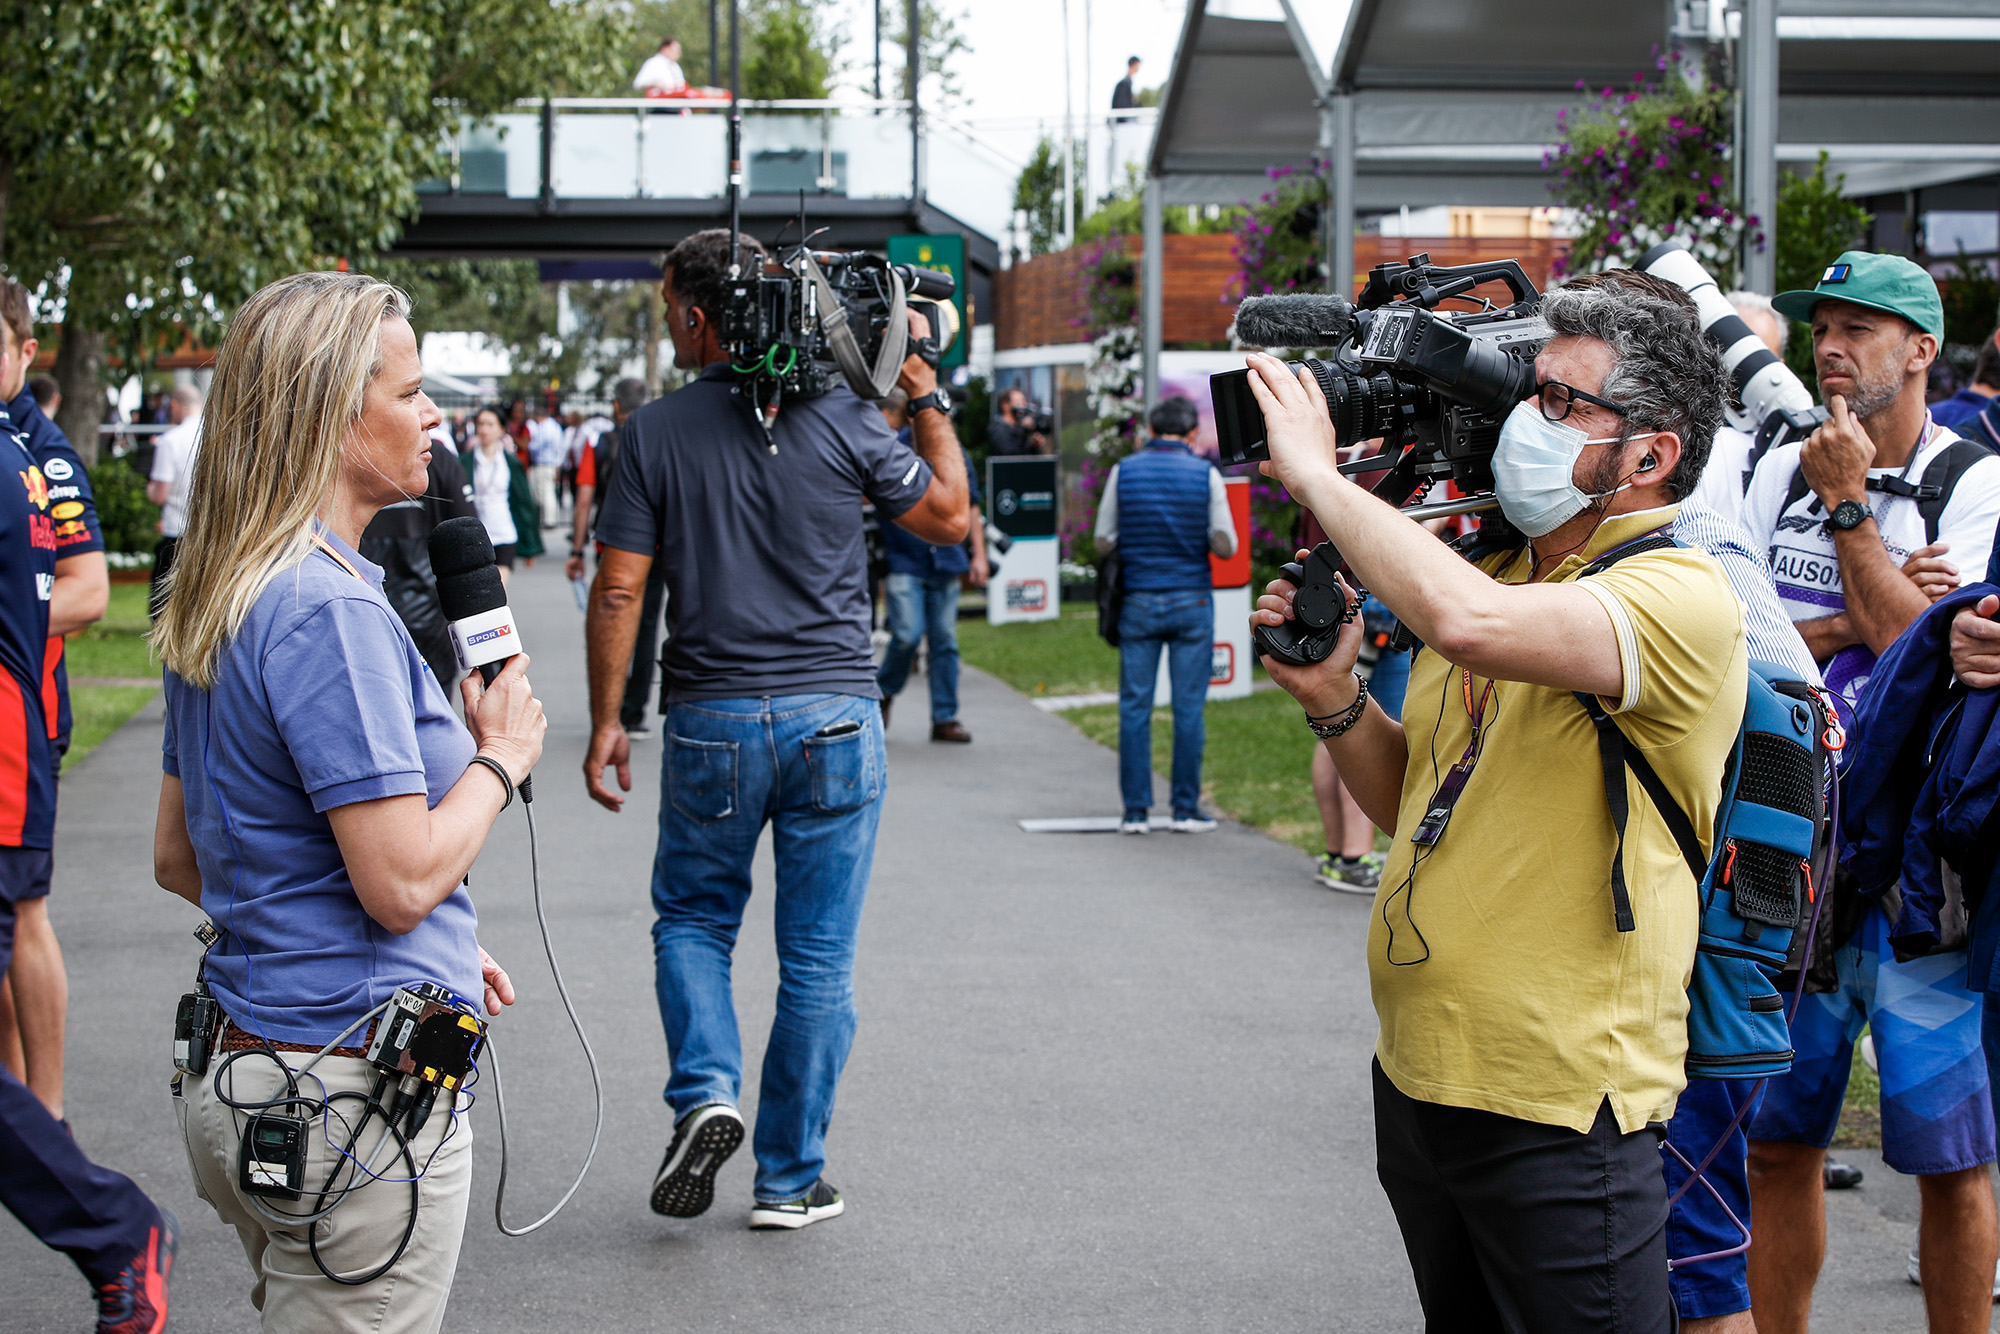 Cameraman in a face mask in the paddock at the 2020 Australian Grand Prix